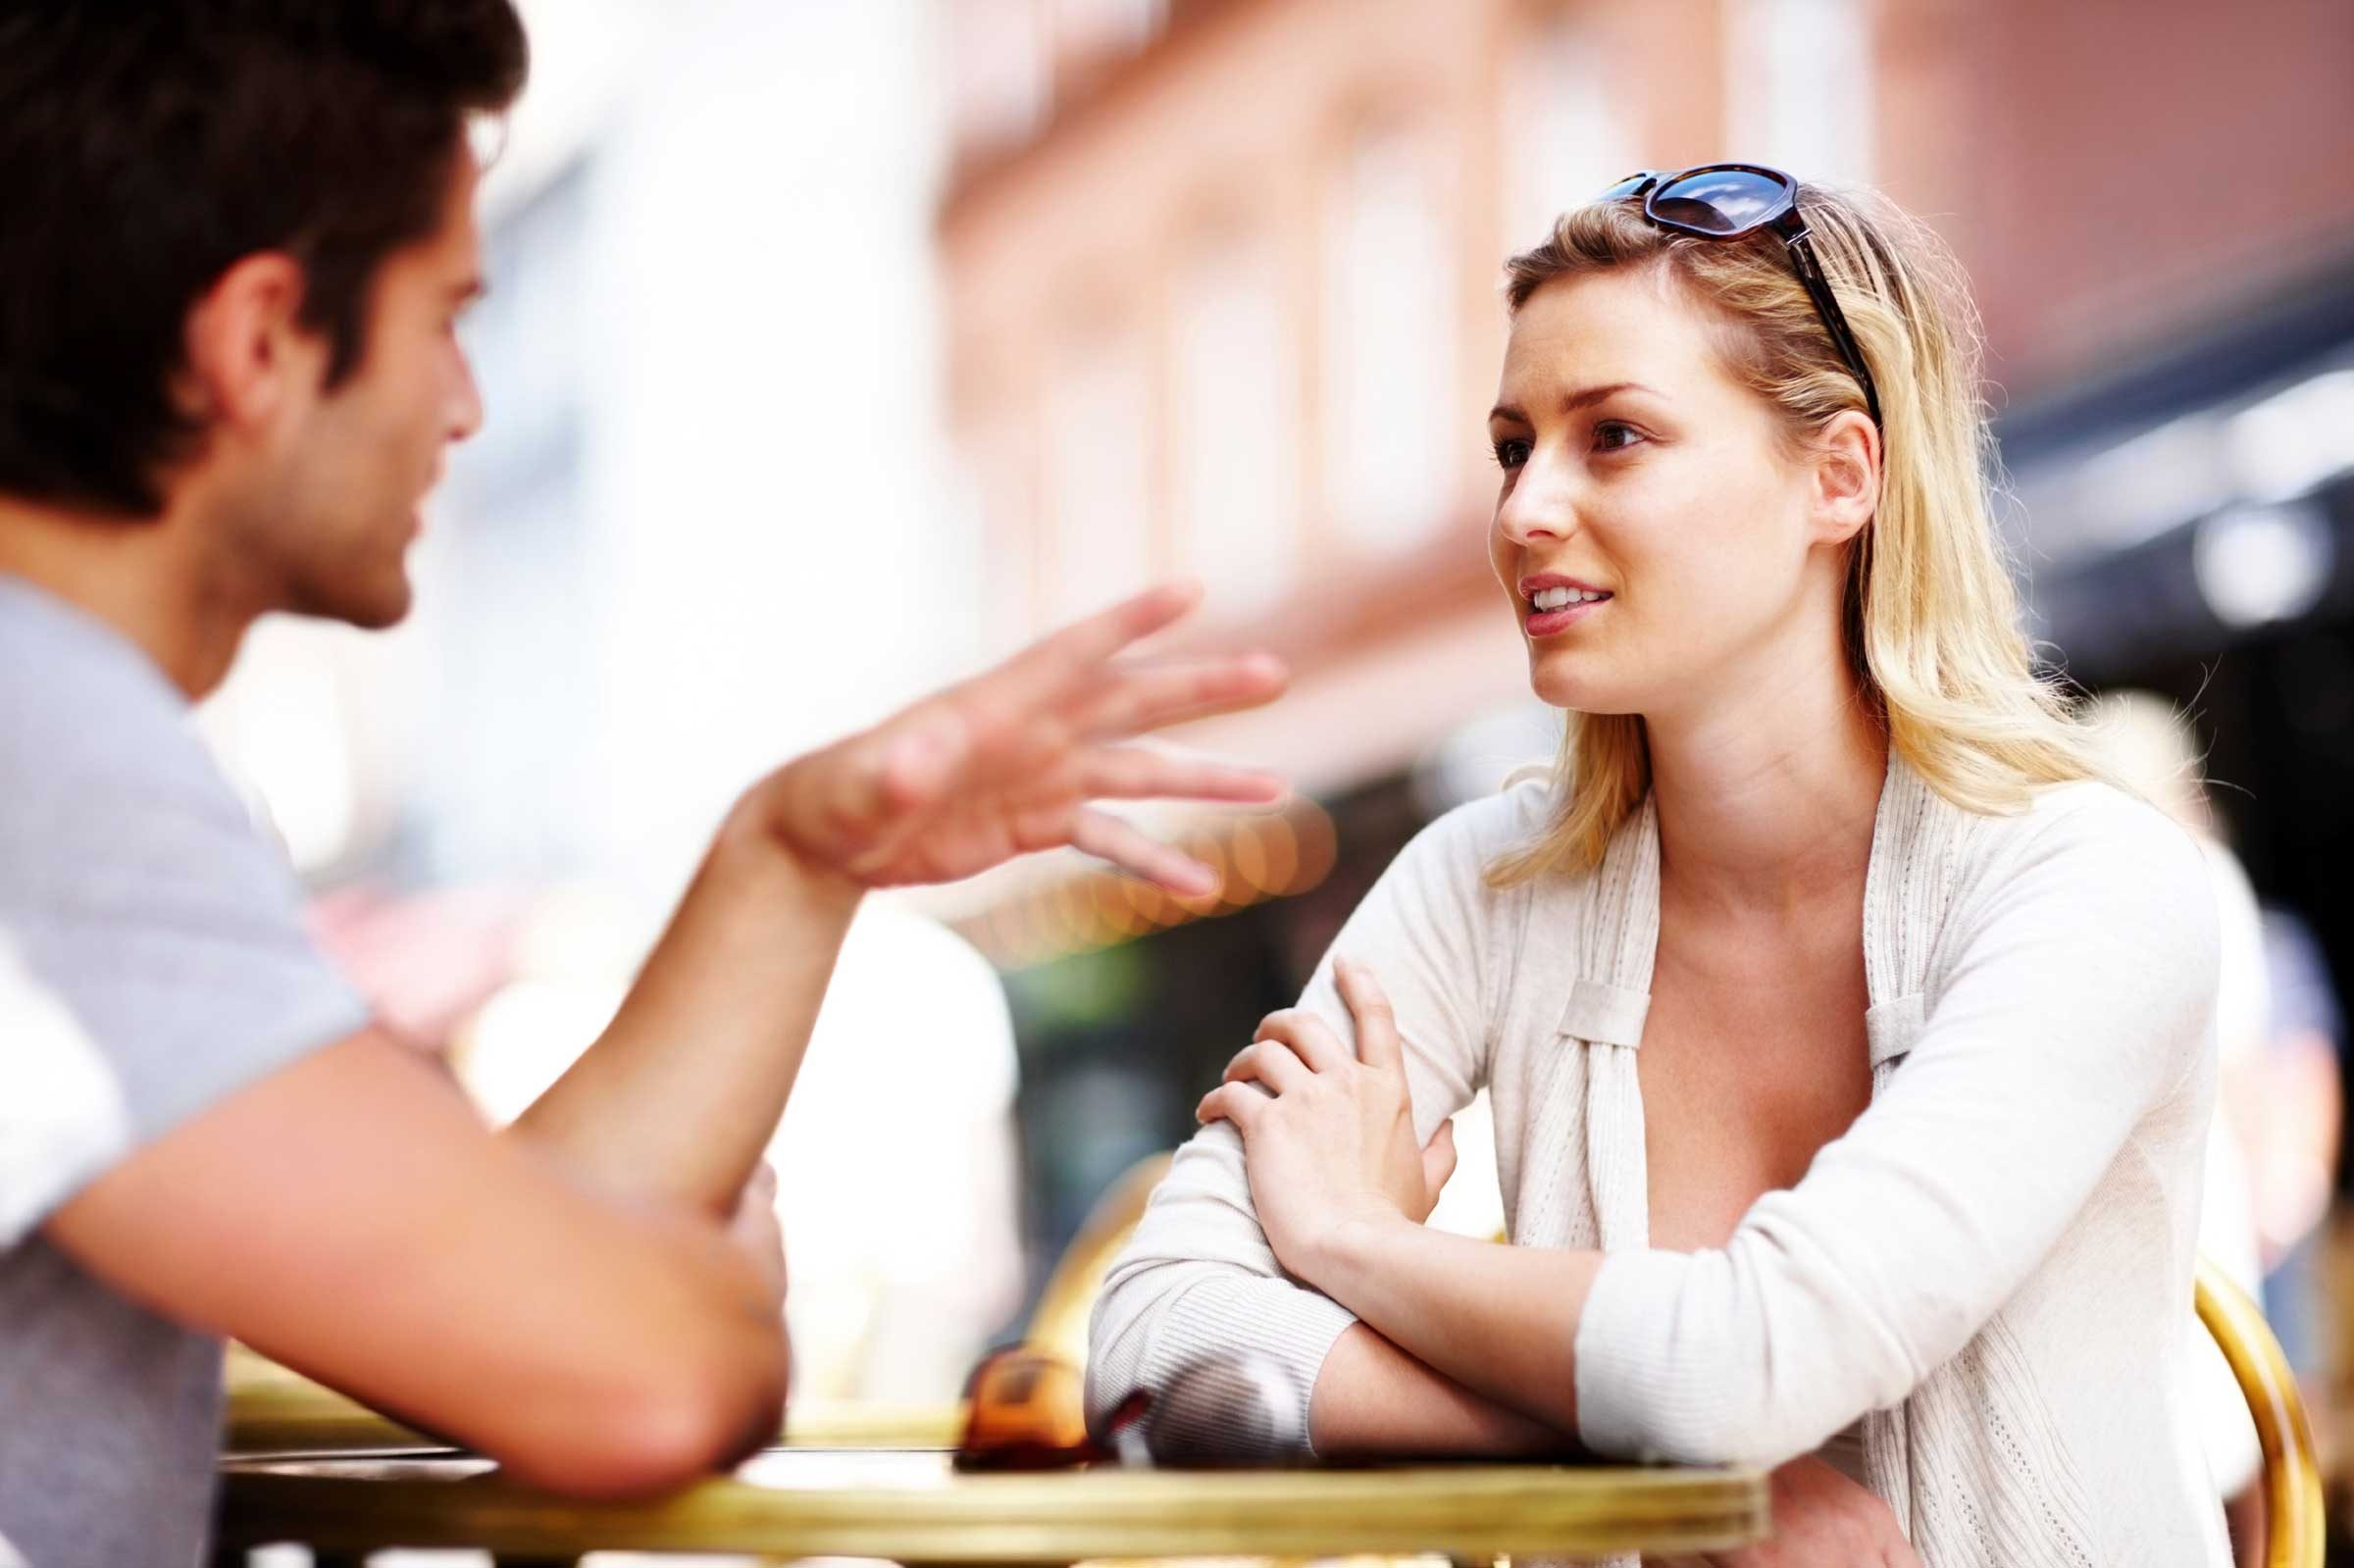 Body language and dating